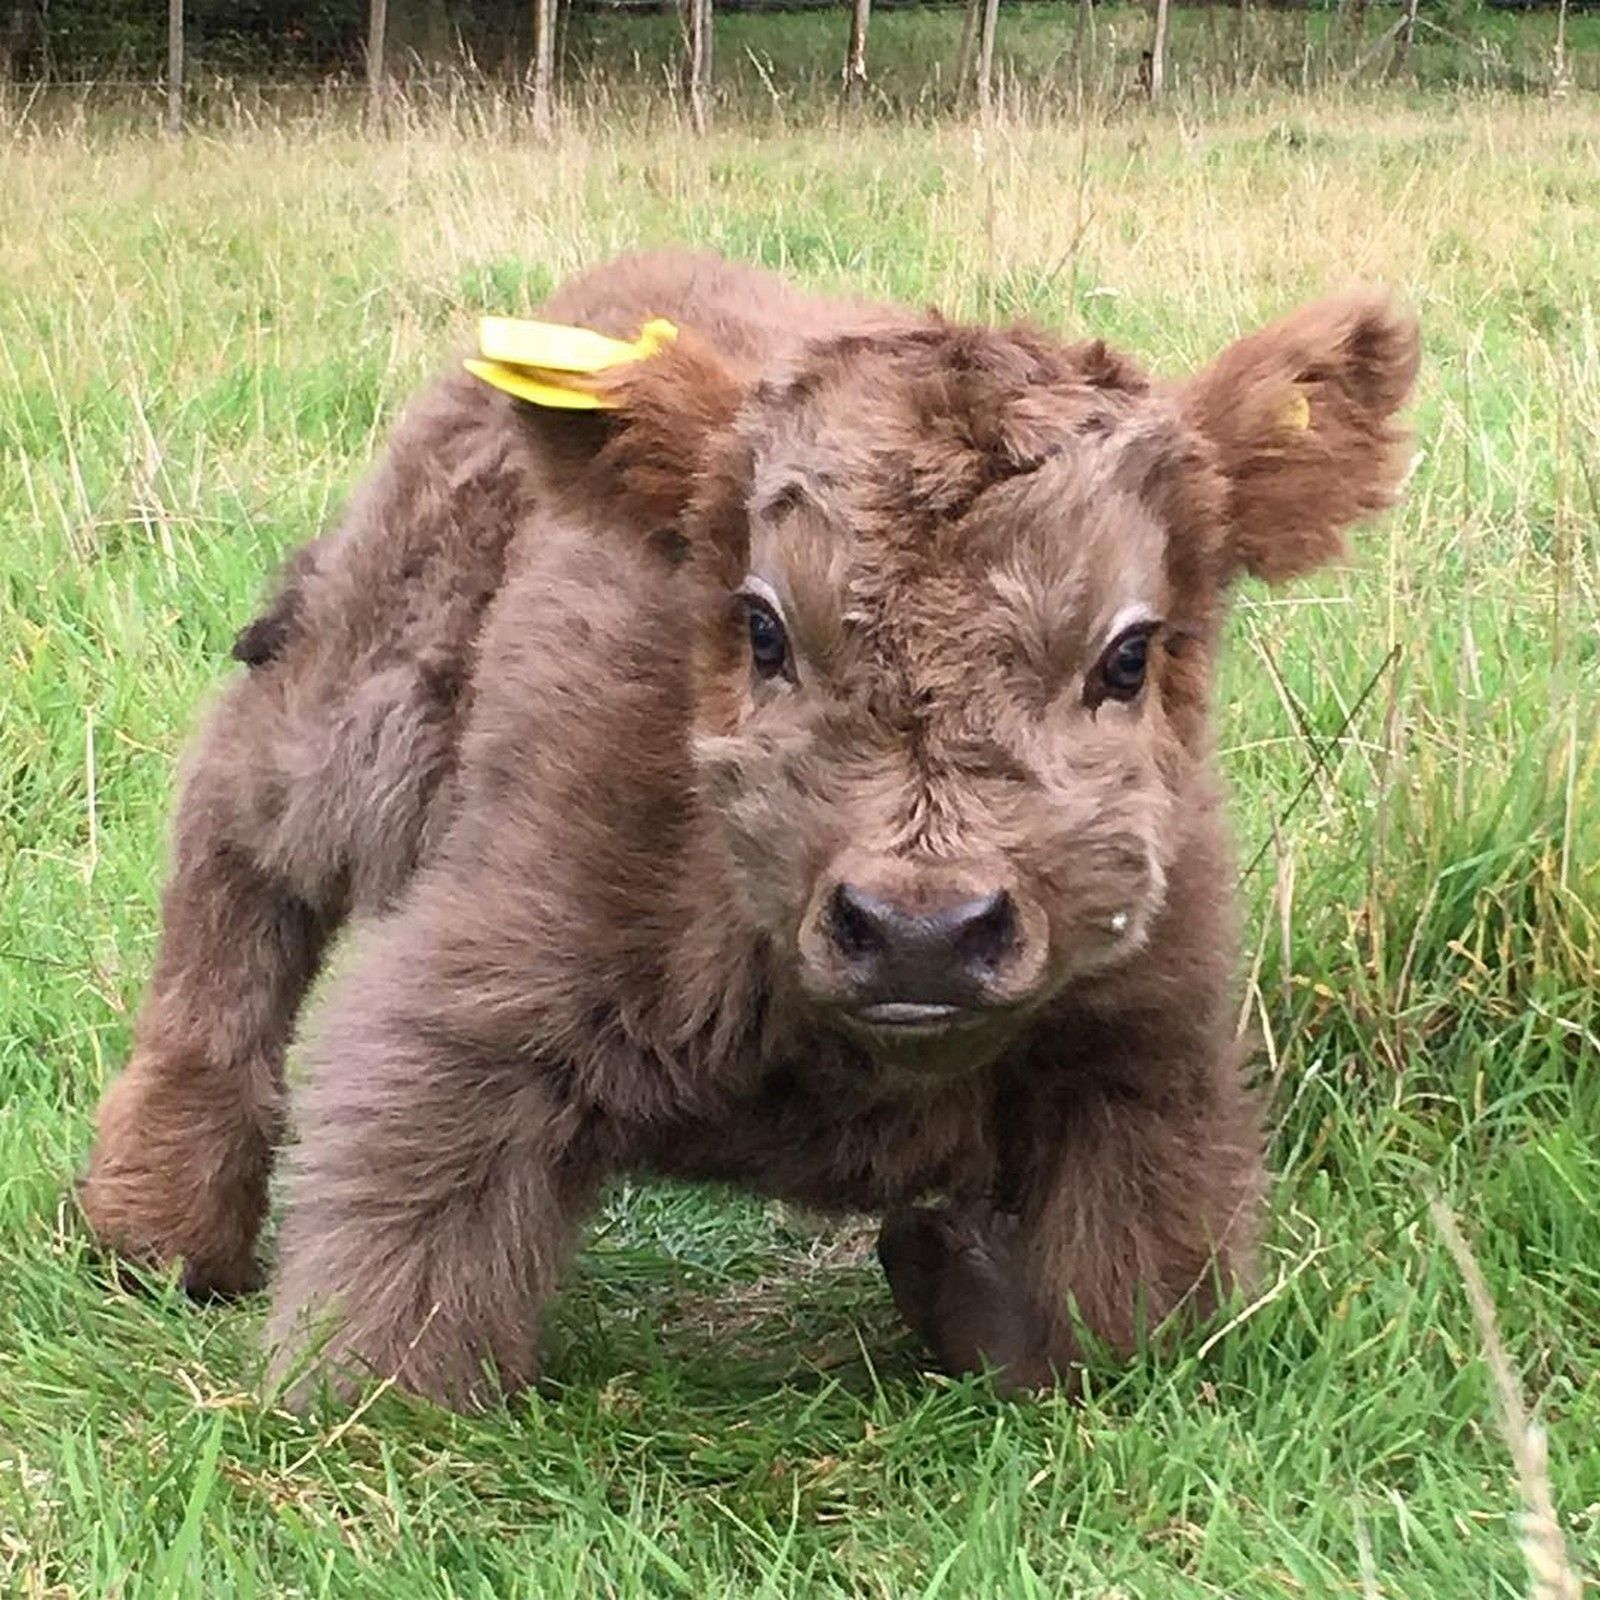 21 Highland Cattle Calf Photos to Bring a Smile to Your Day #cuteanimals